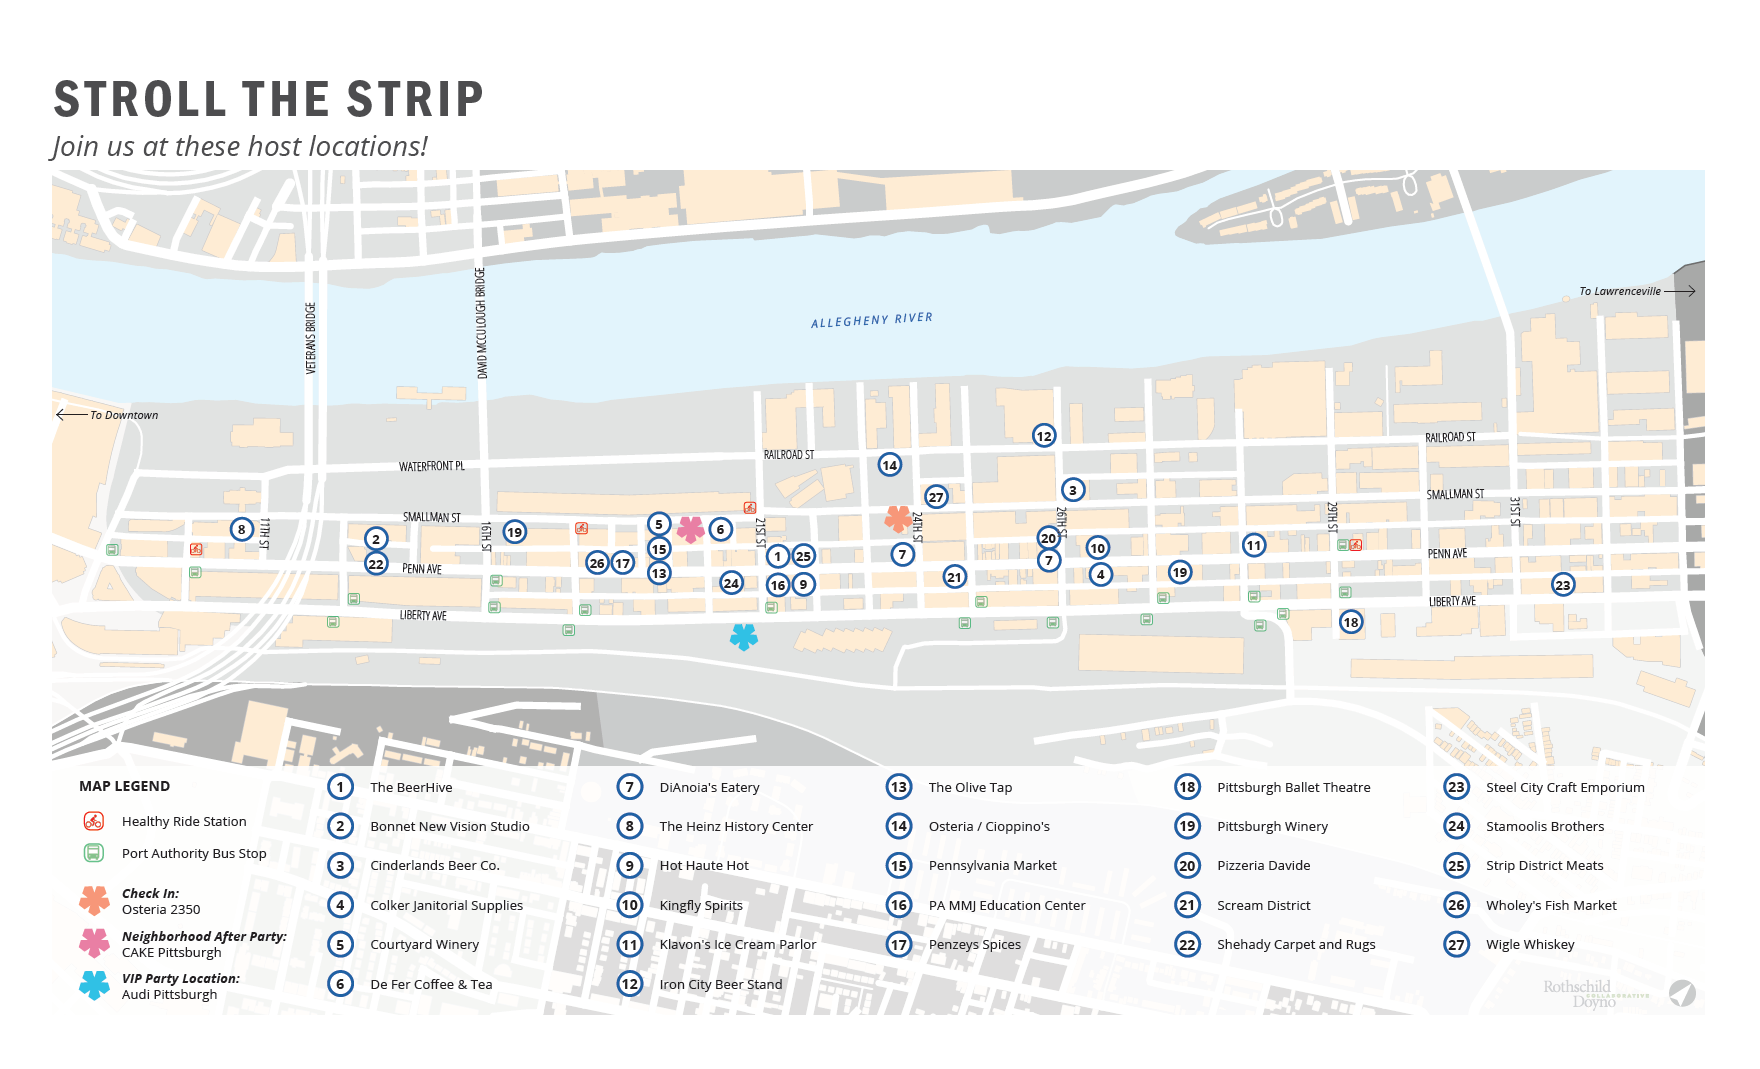 Stroll the Strip 2019 Strip District Map Locations.png